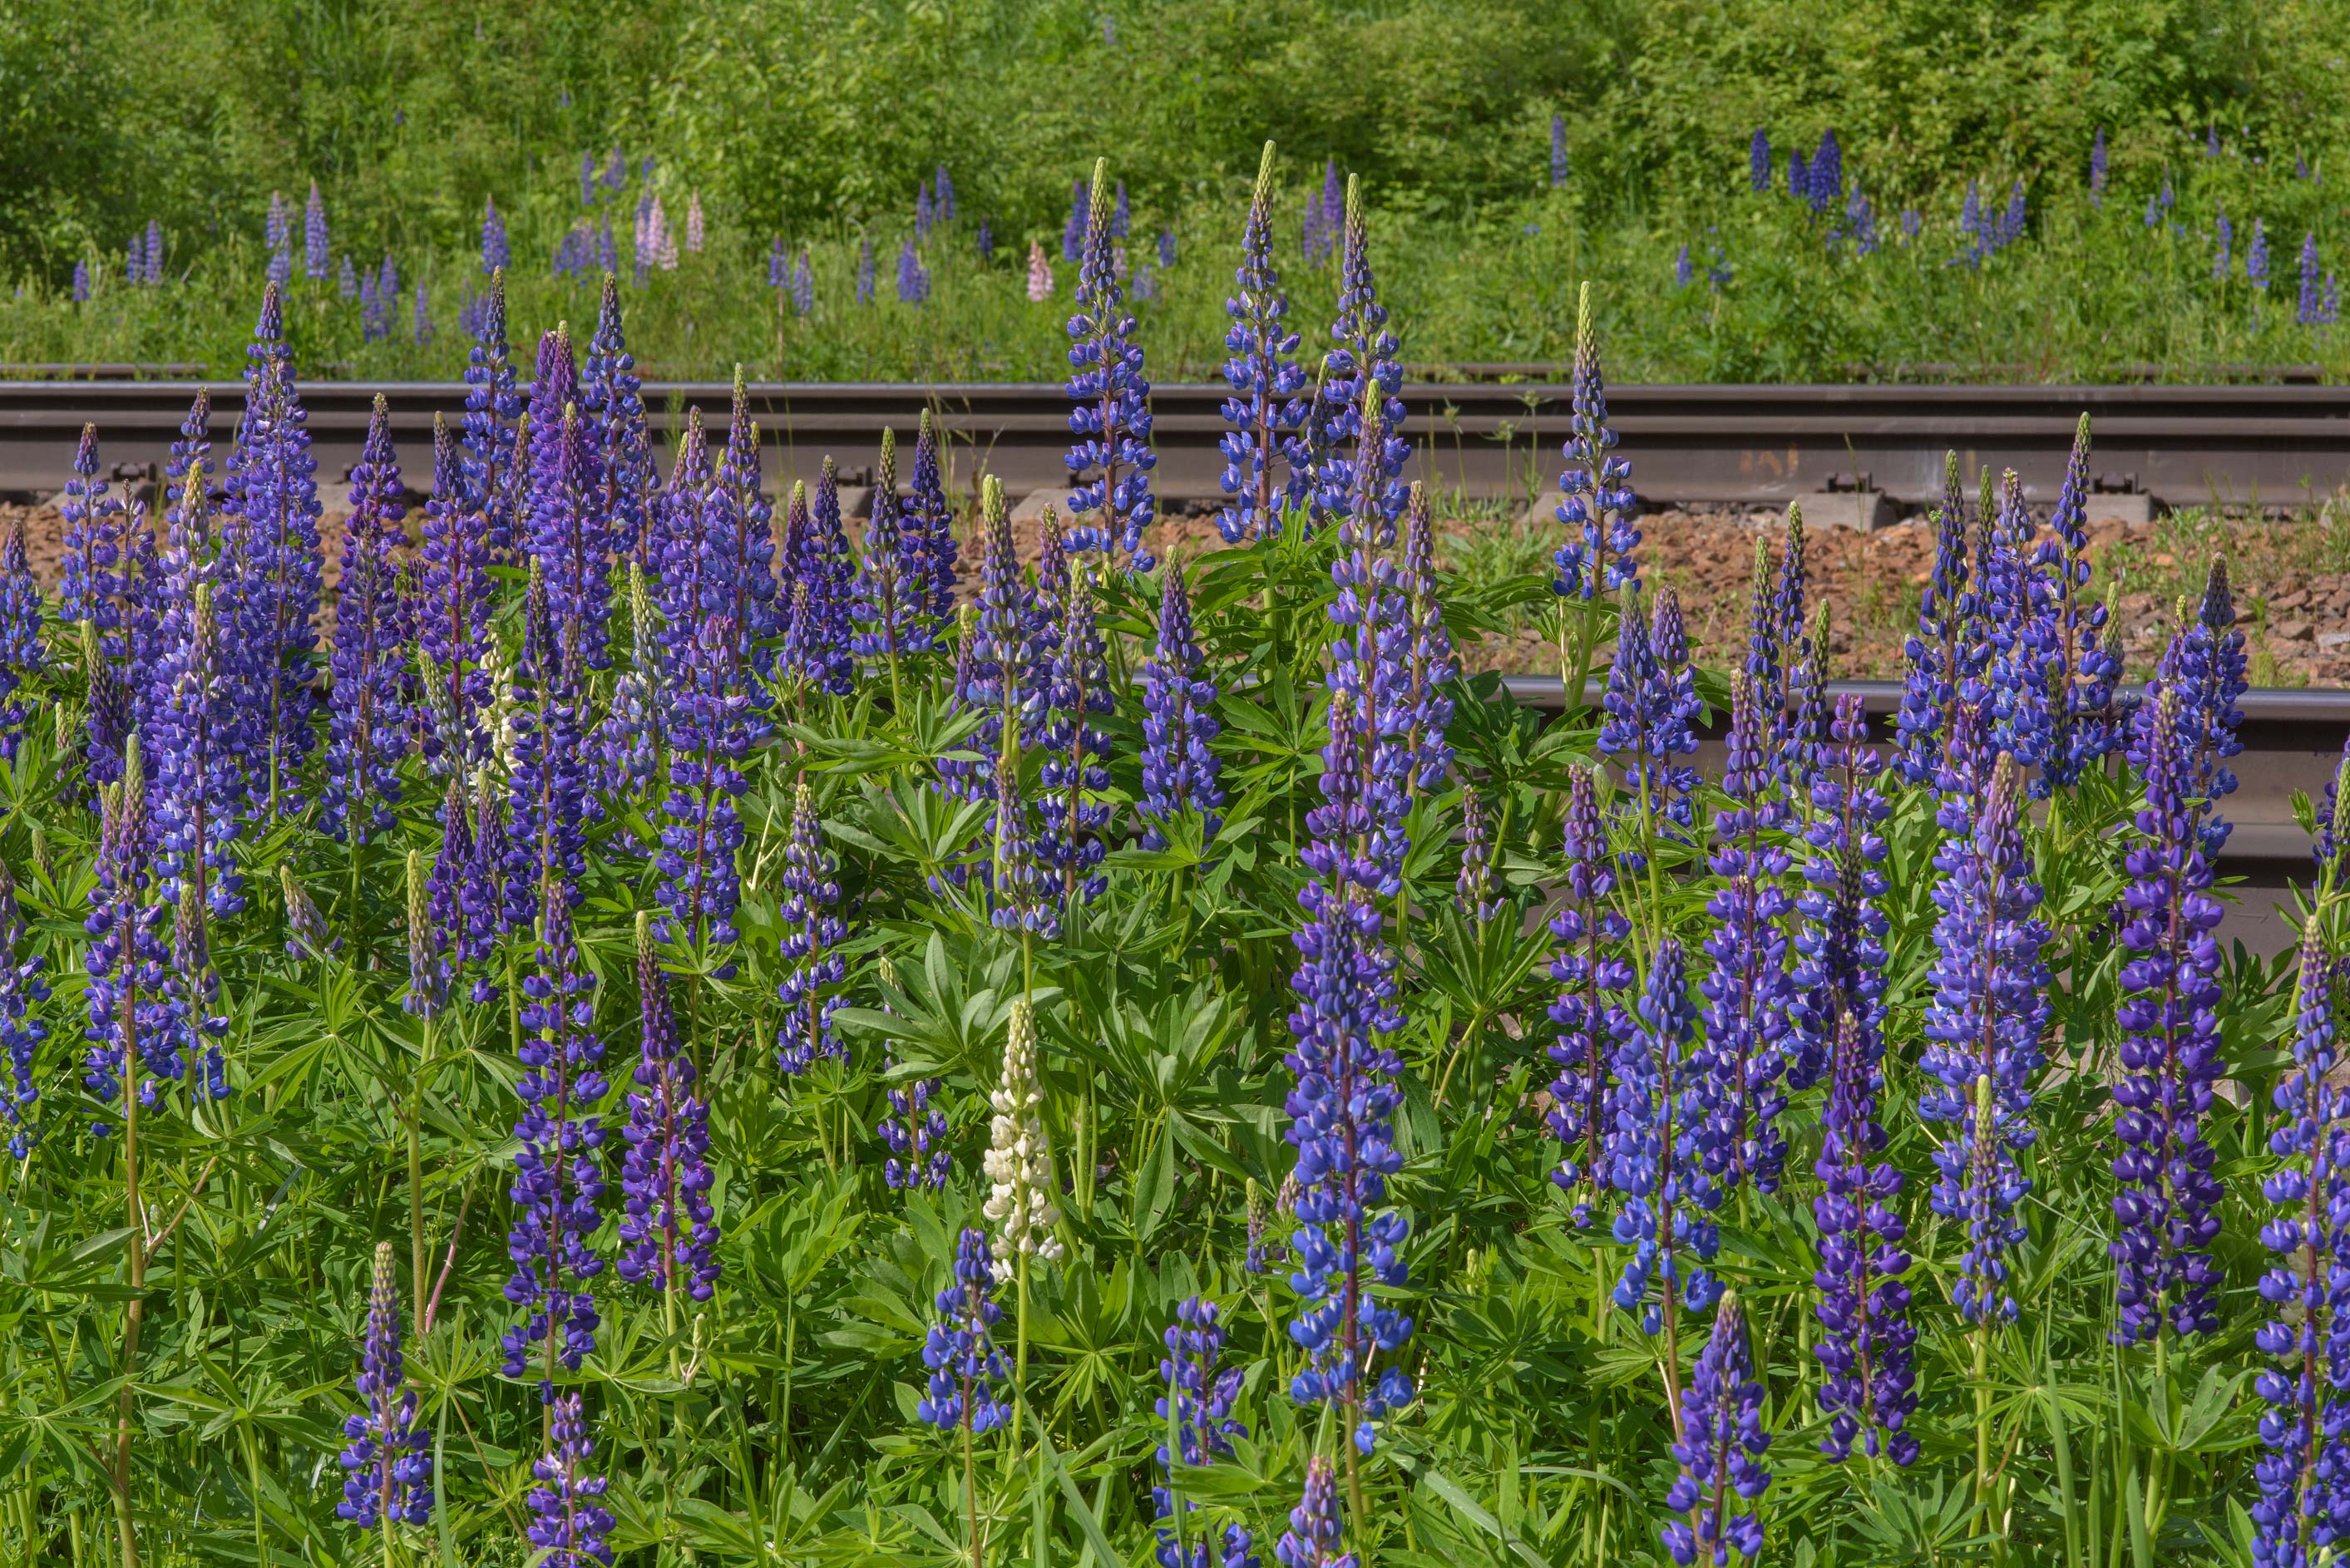 Blue lupin (Lupinus) near railroad near Orekhovo, north from St.Petersburg. Russia